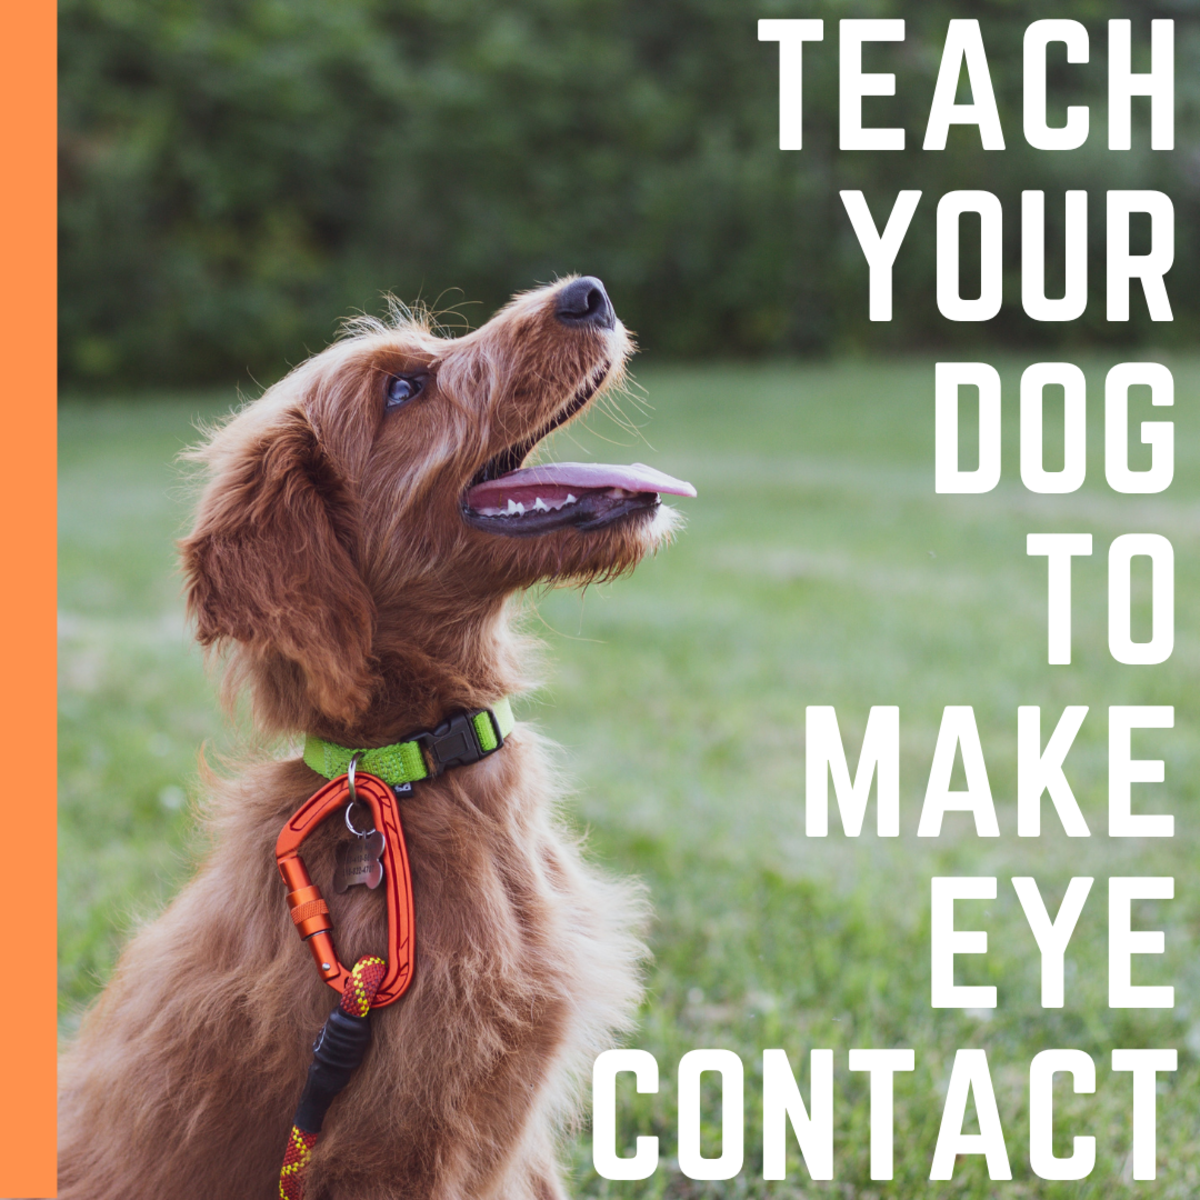 Eye contact will help you communicate with your friend.